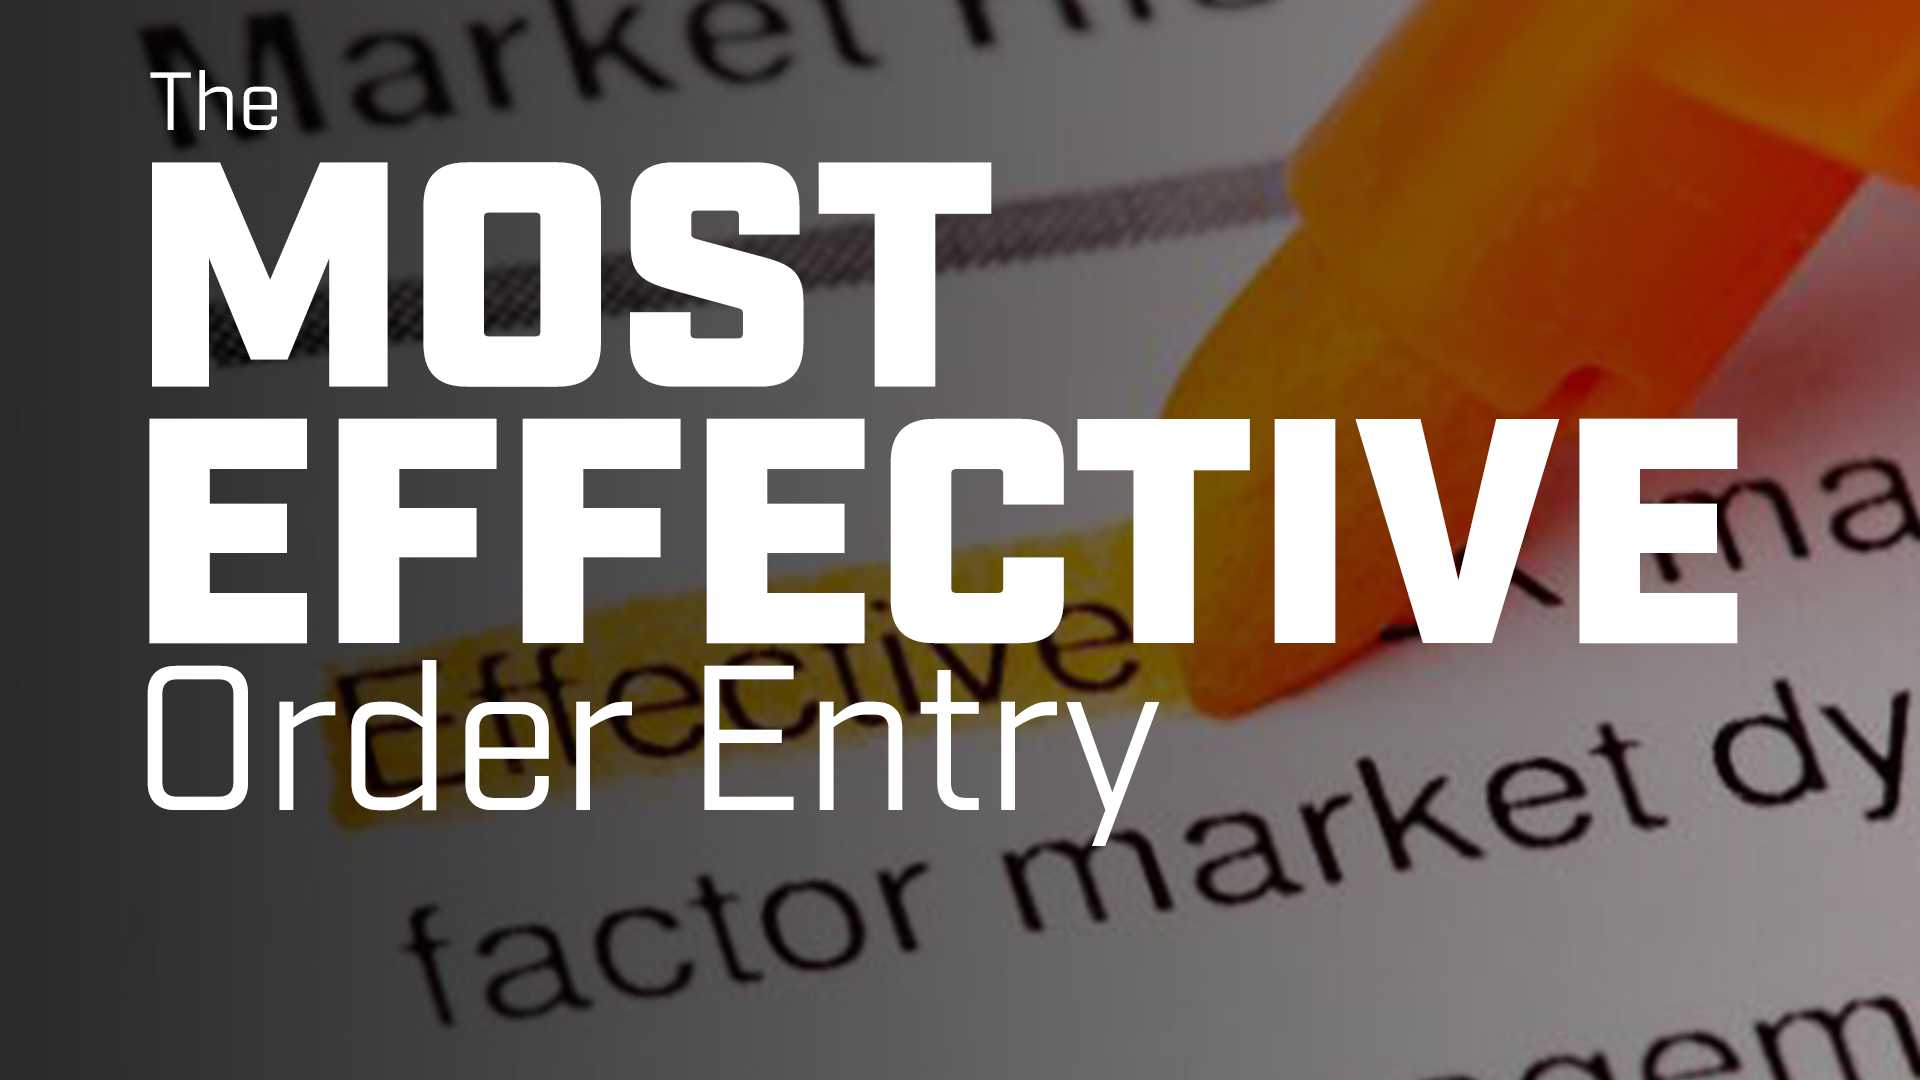 The Most Effective Order Entry